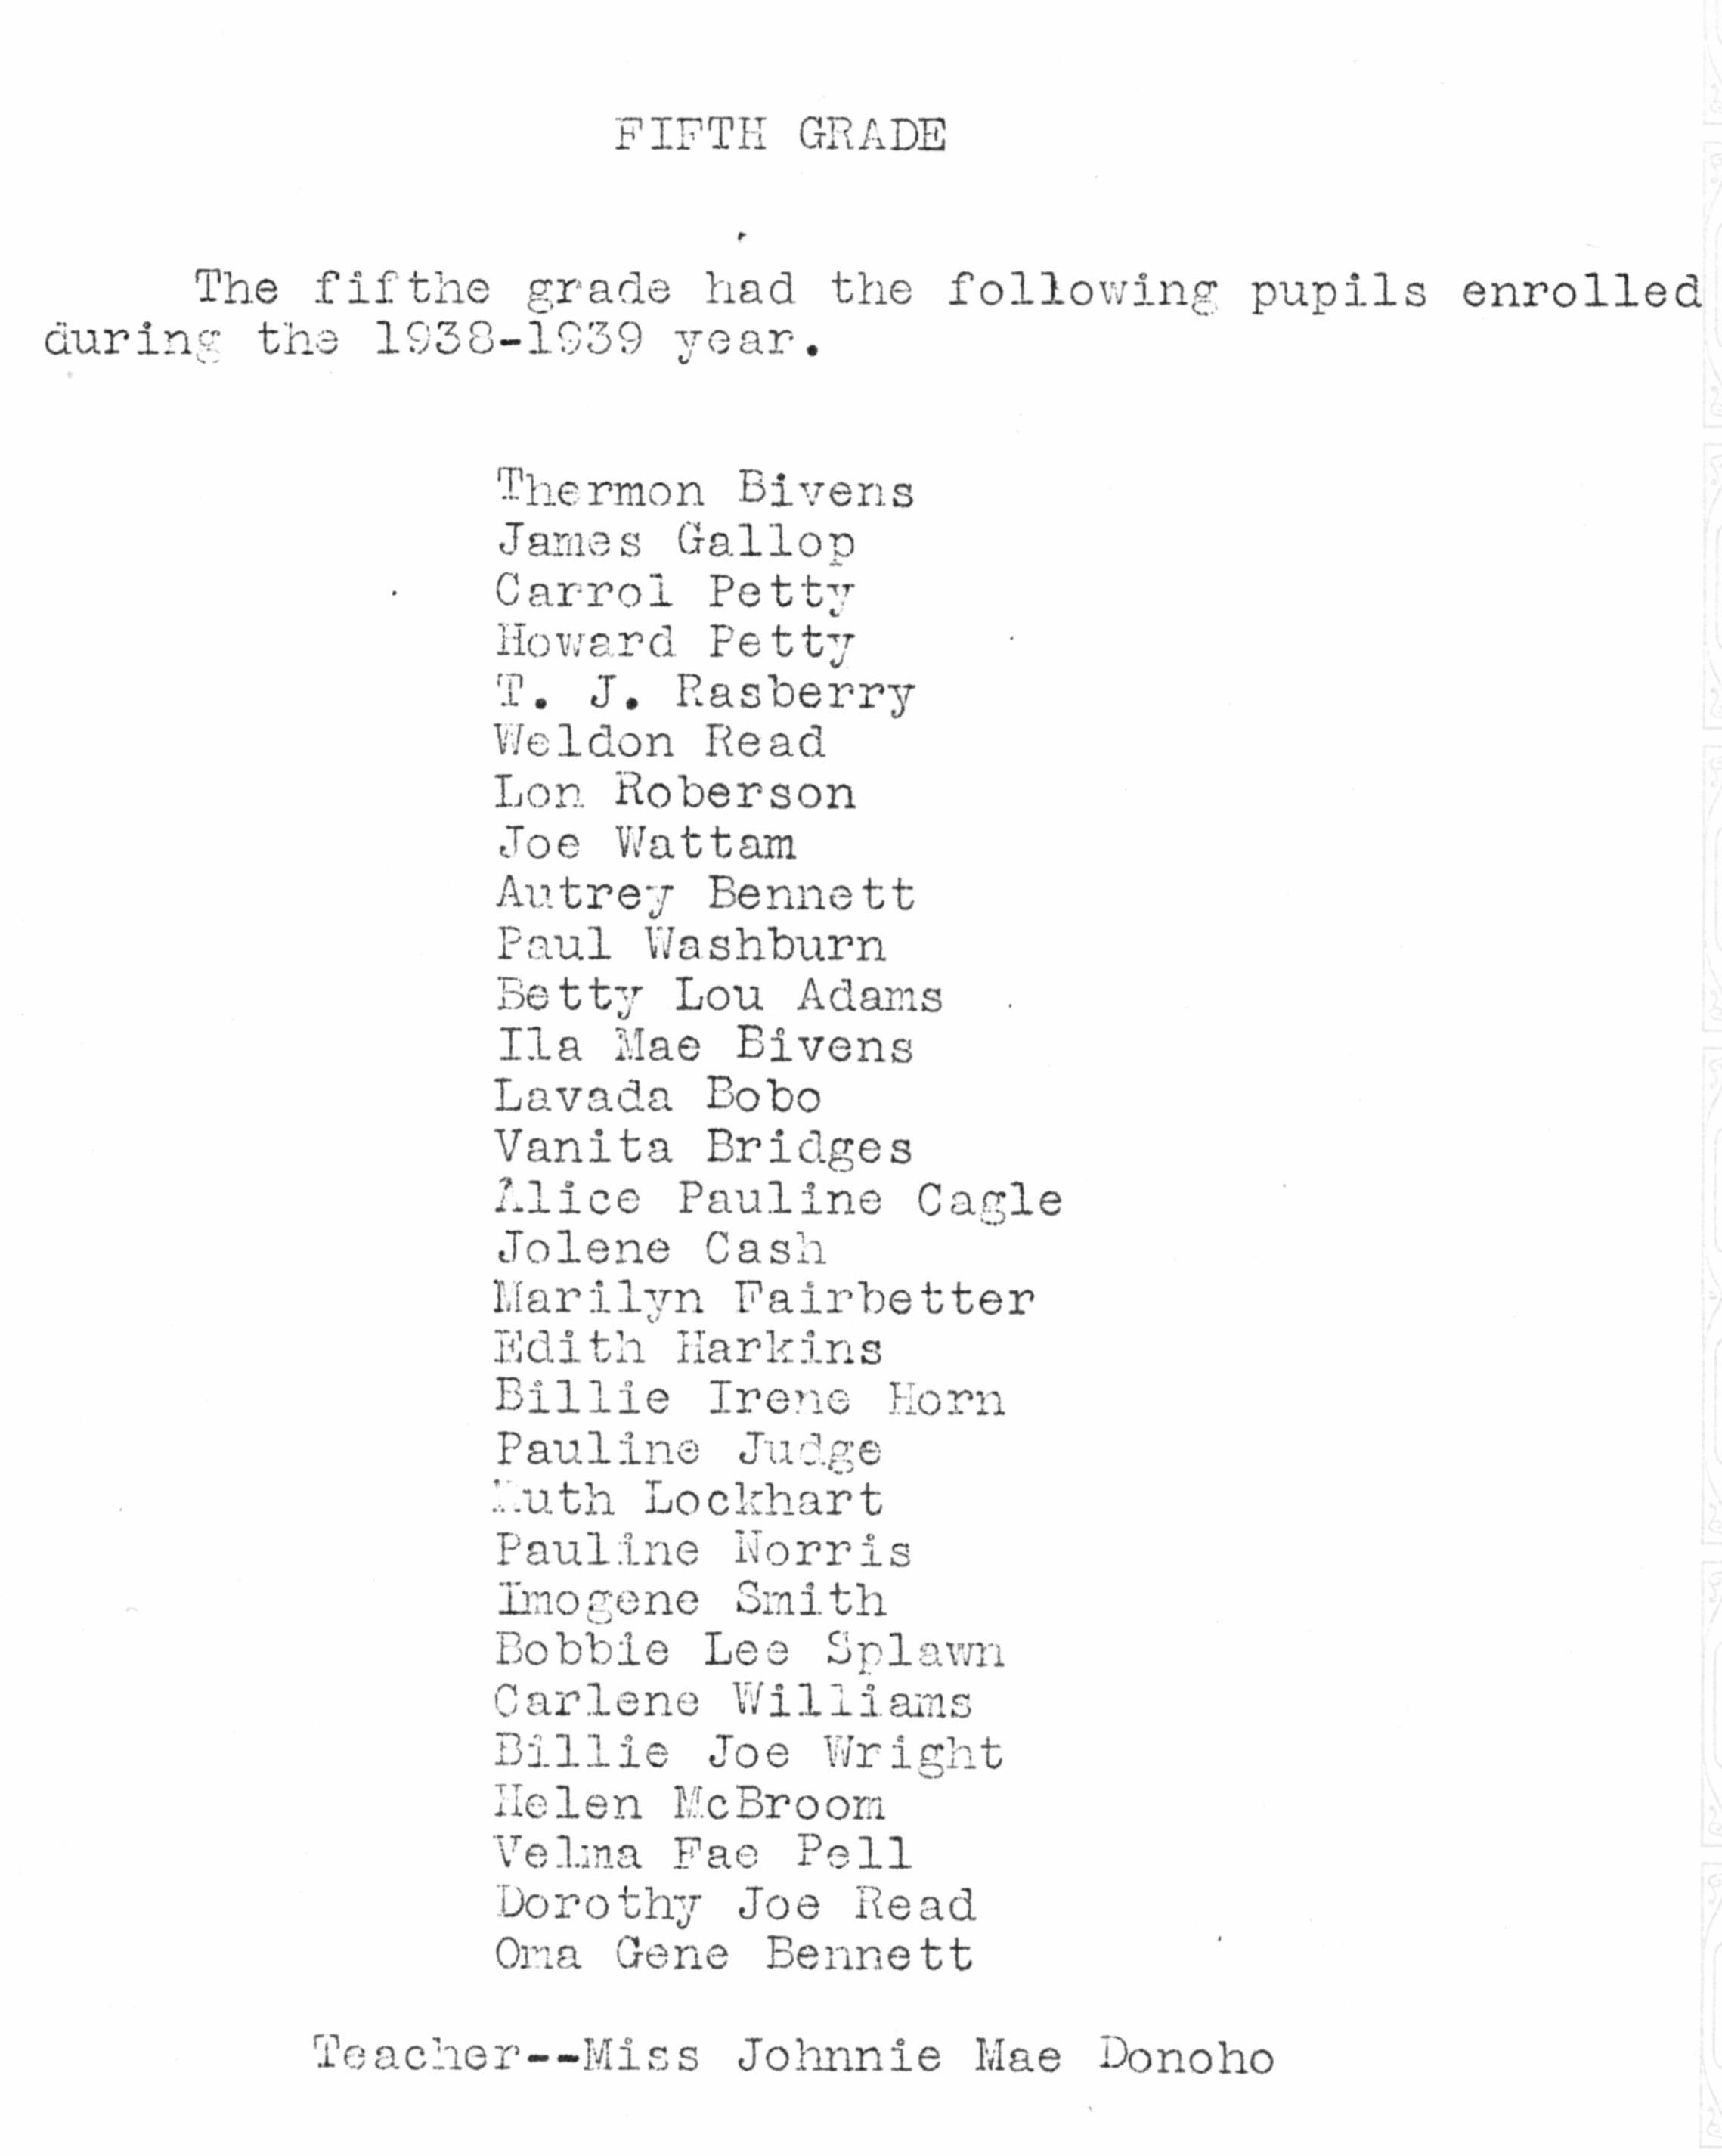 Cabinet Shop Names Index Of Names Q S For The 1938 1979 Boyd Tx School Yearbooks